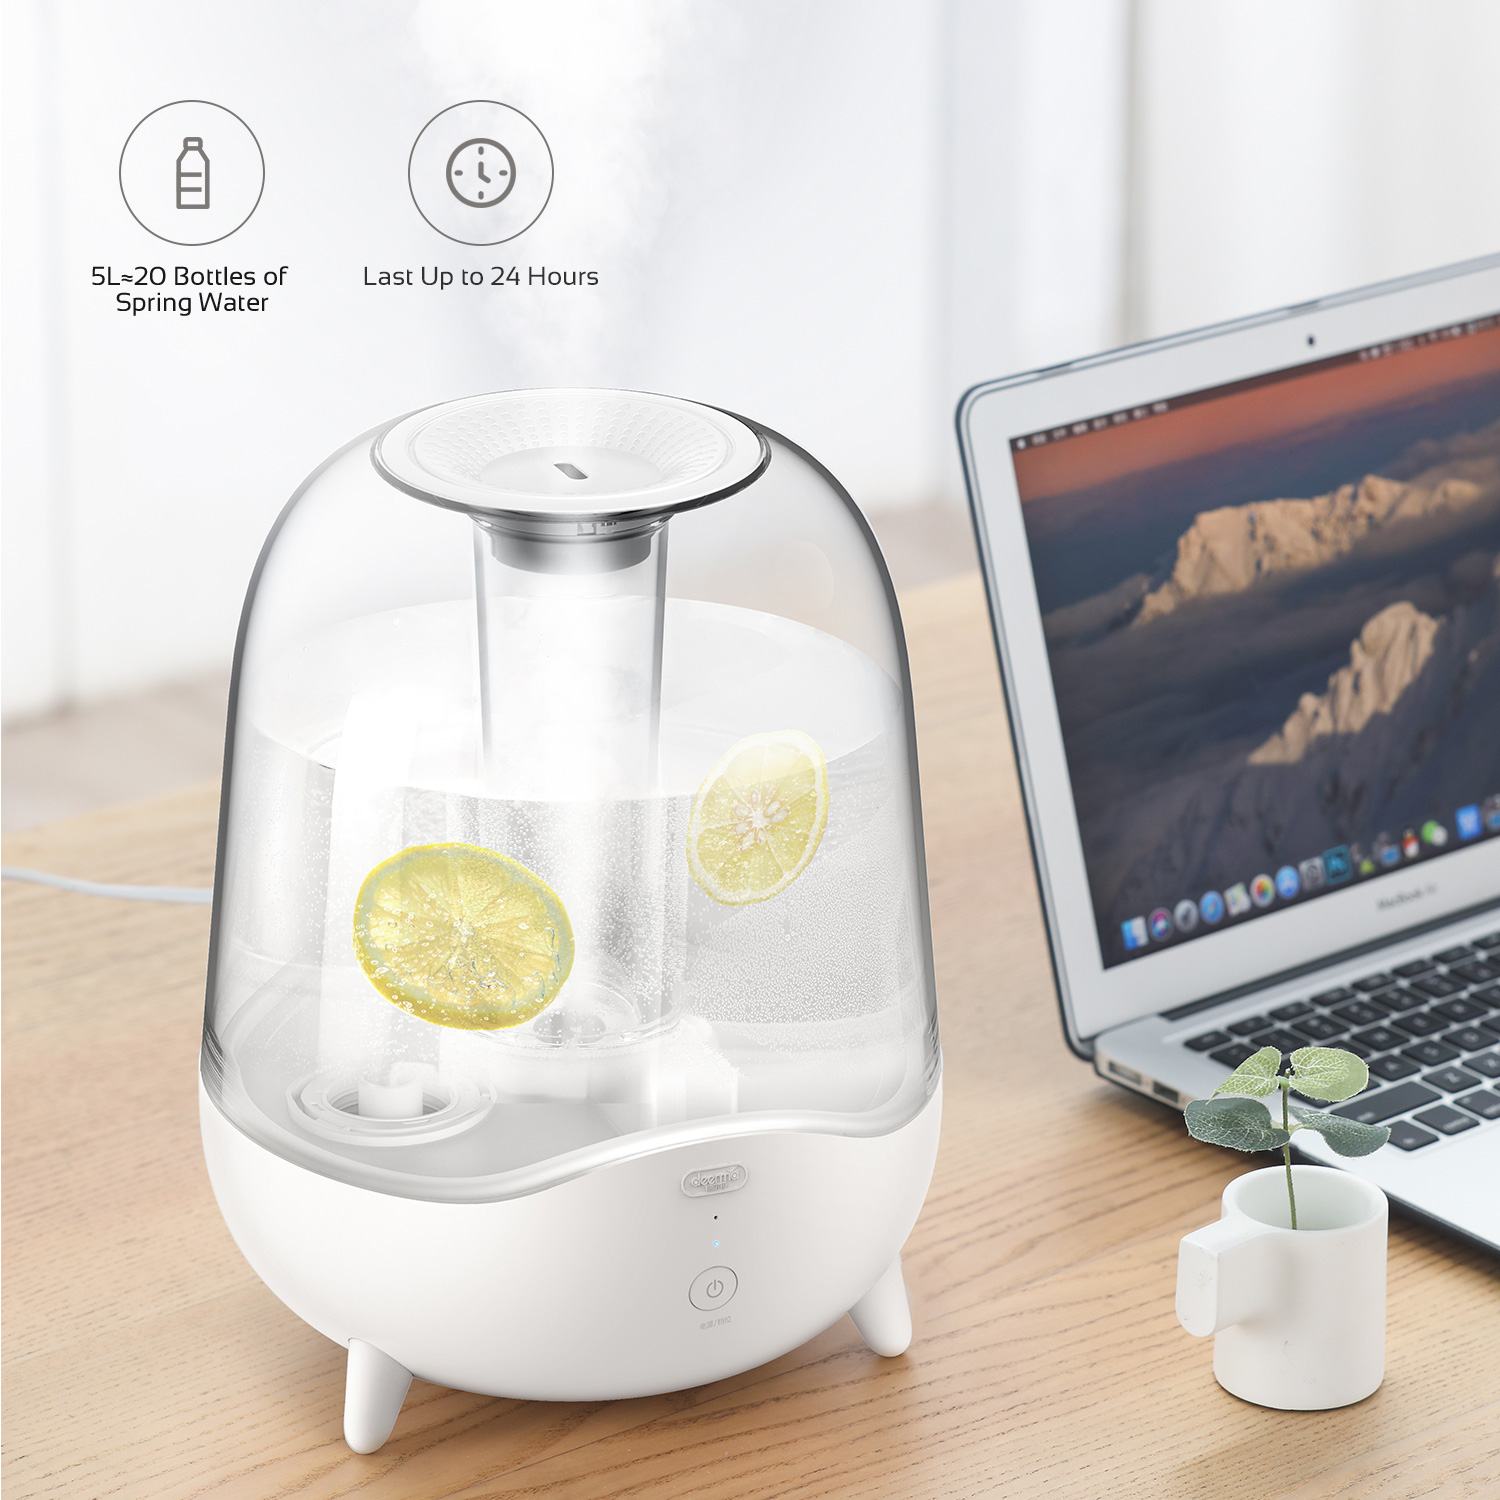 [US Direct] DEERMA 5L Ultrasonic Cool Mist Humidifier for Bedroom, Large Room, Office, Baby with Crystal Clear Transparent Water Tank